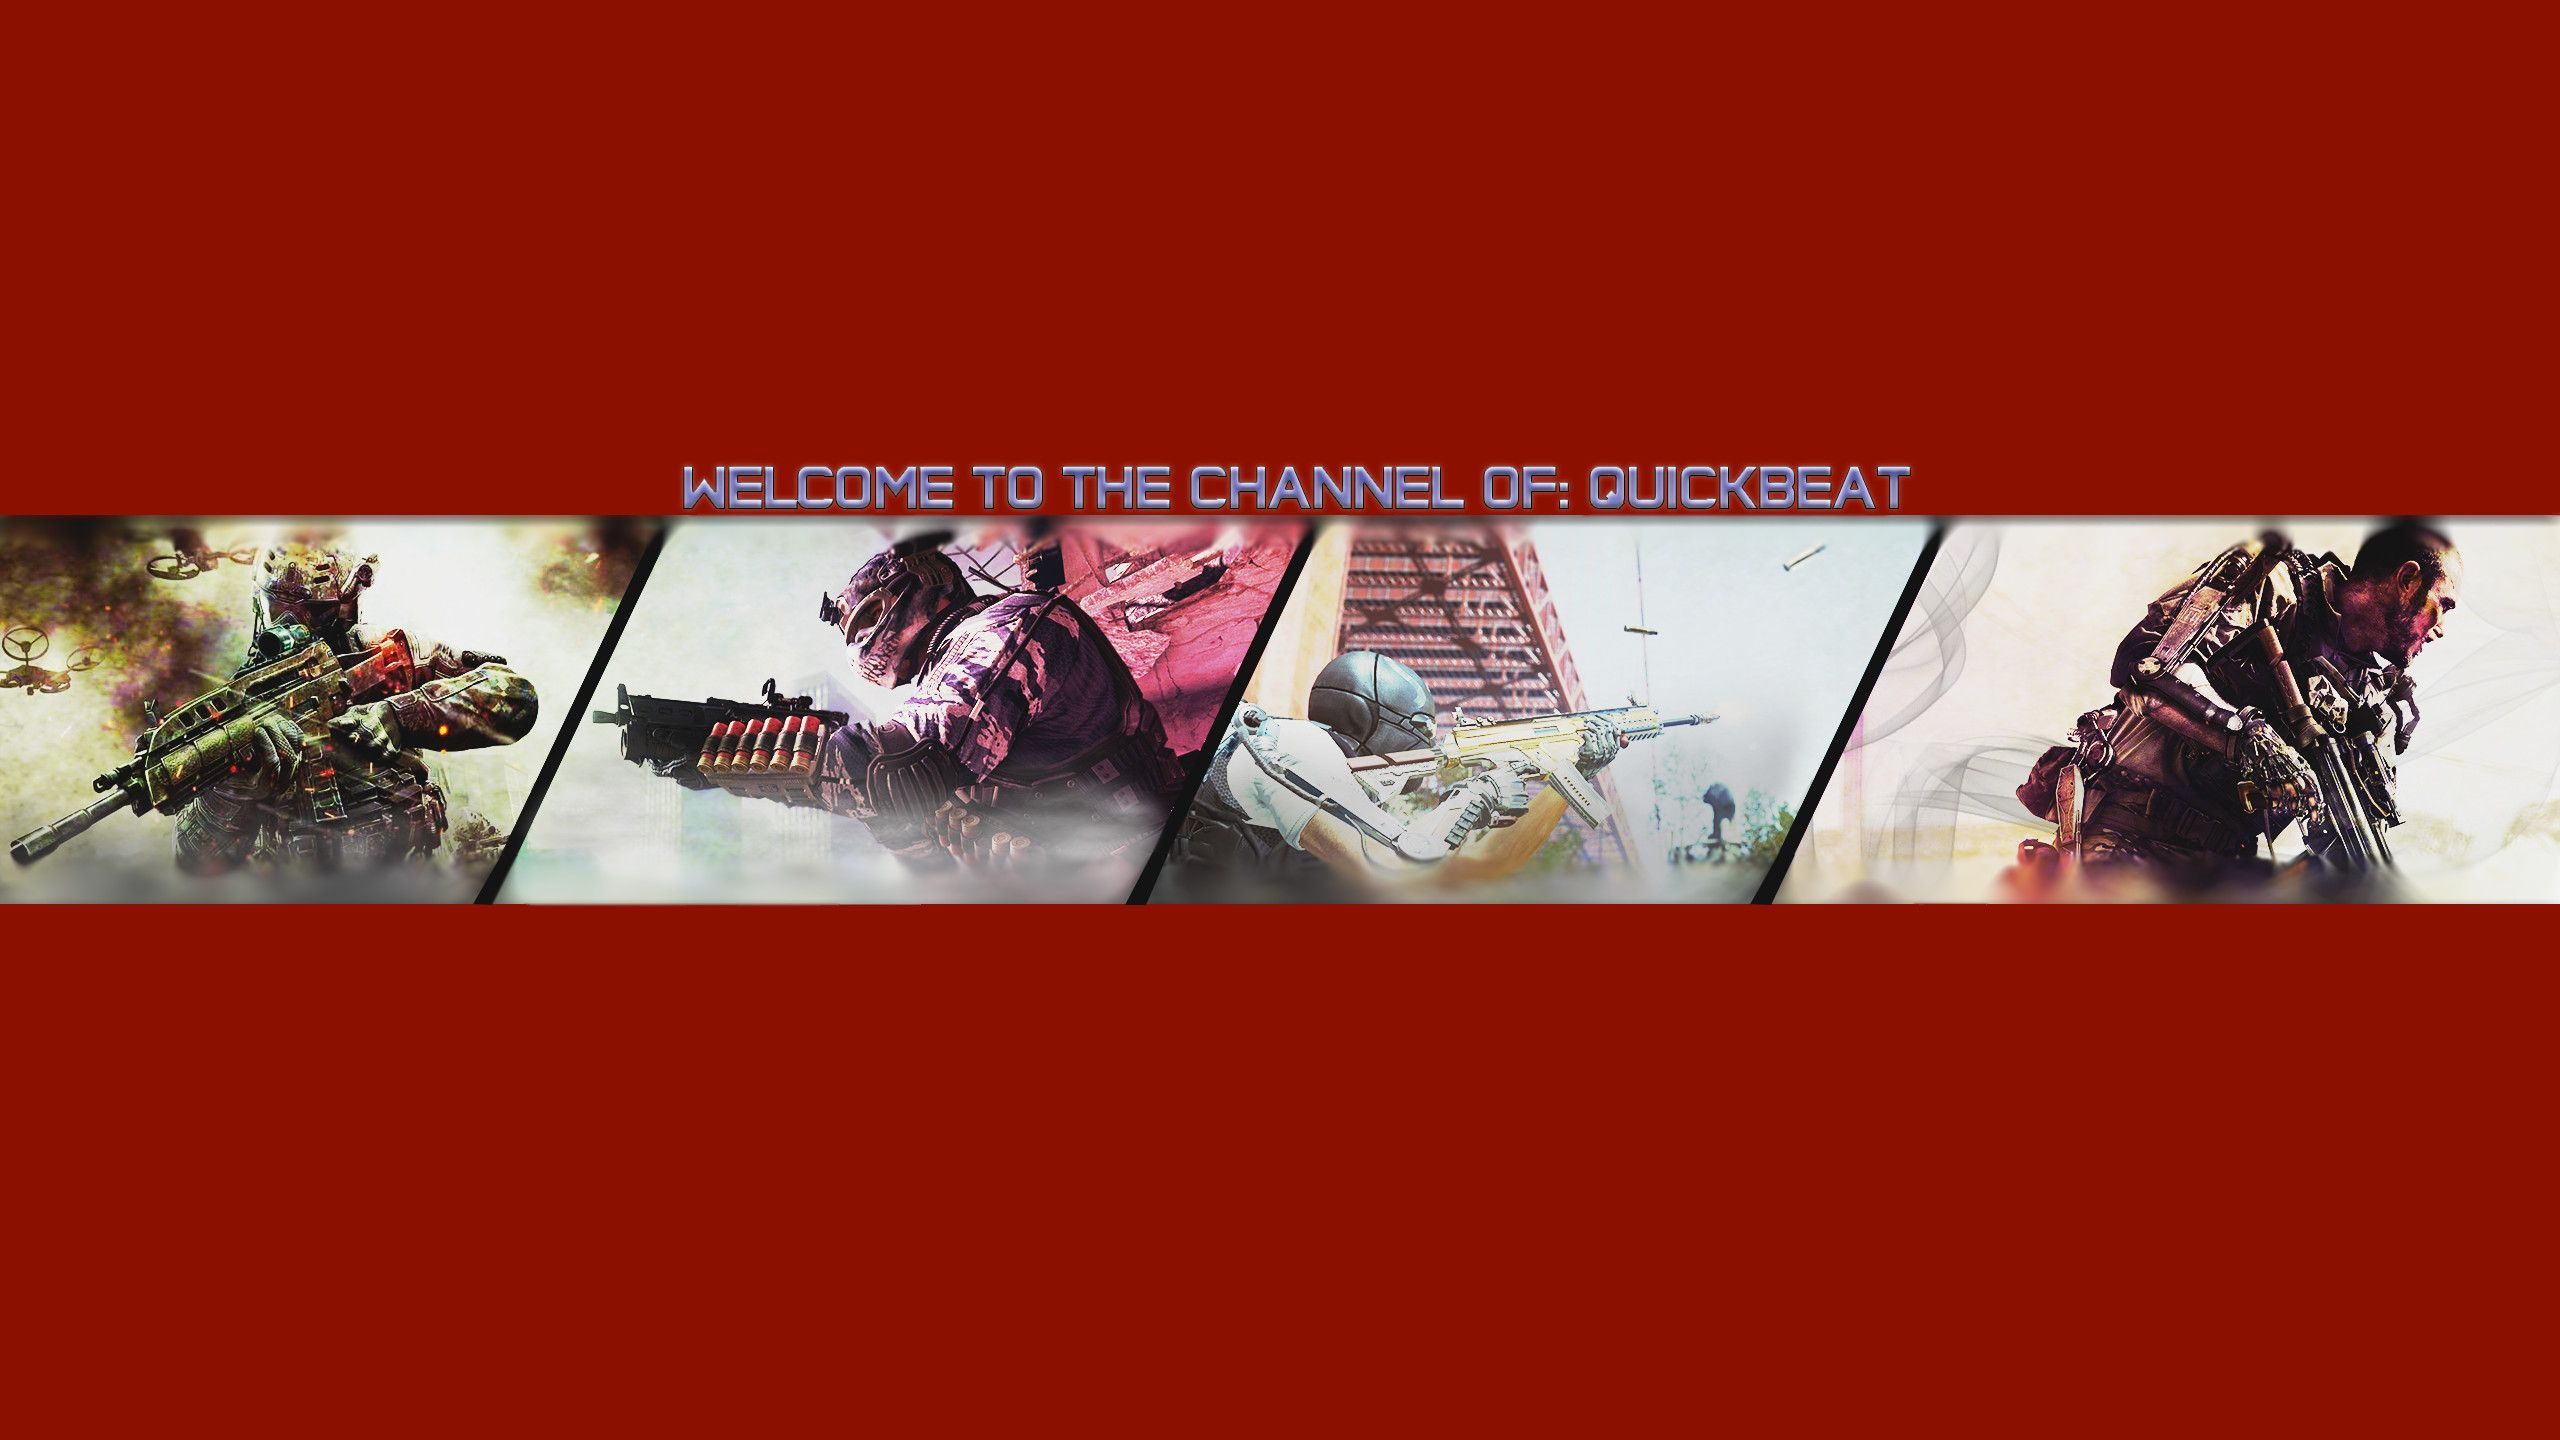 2560x1440 Call Of Duty Youtube Banner By Quickbeat In 2020